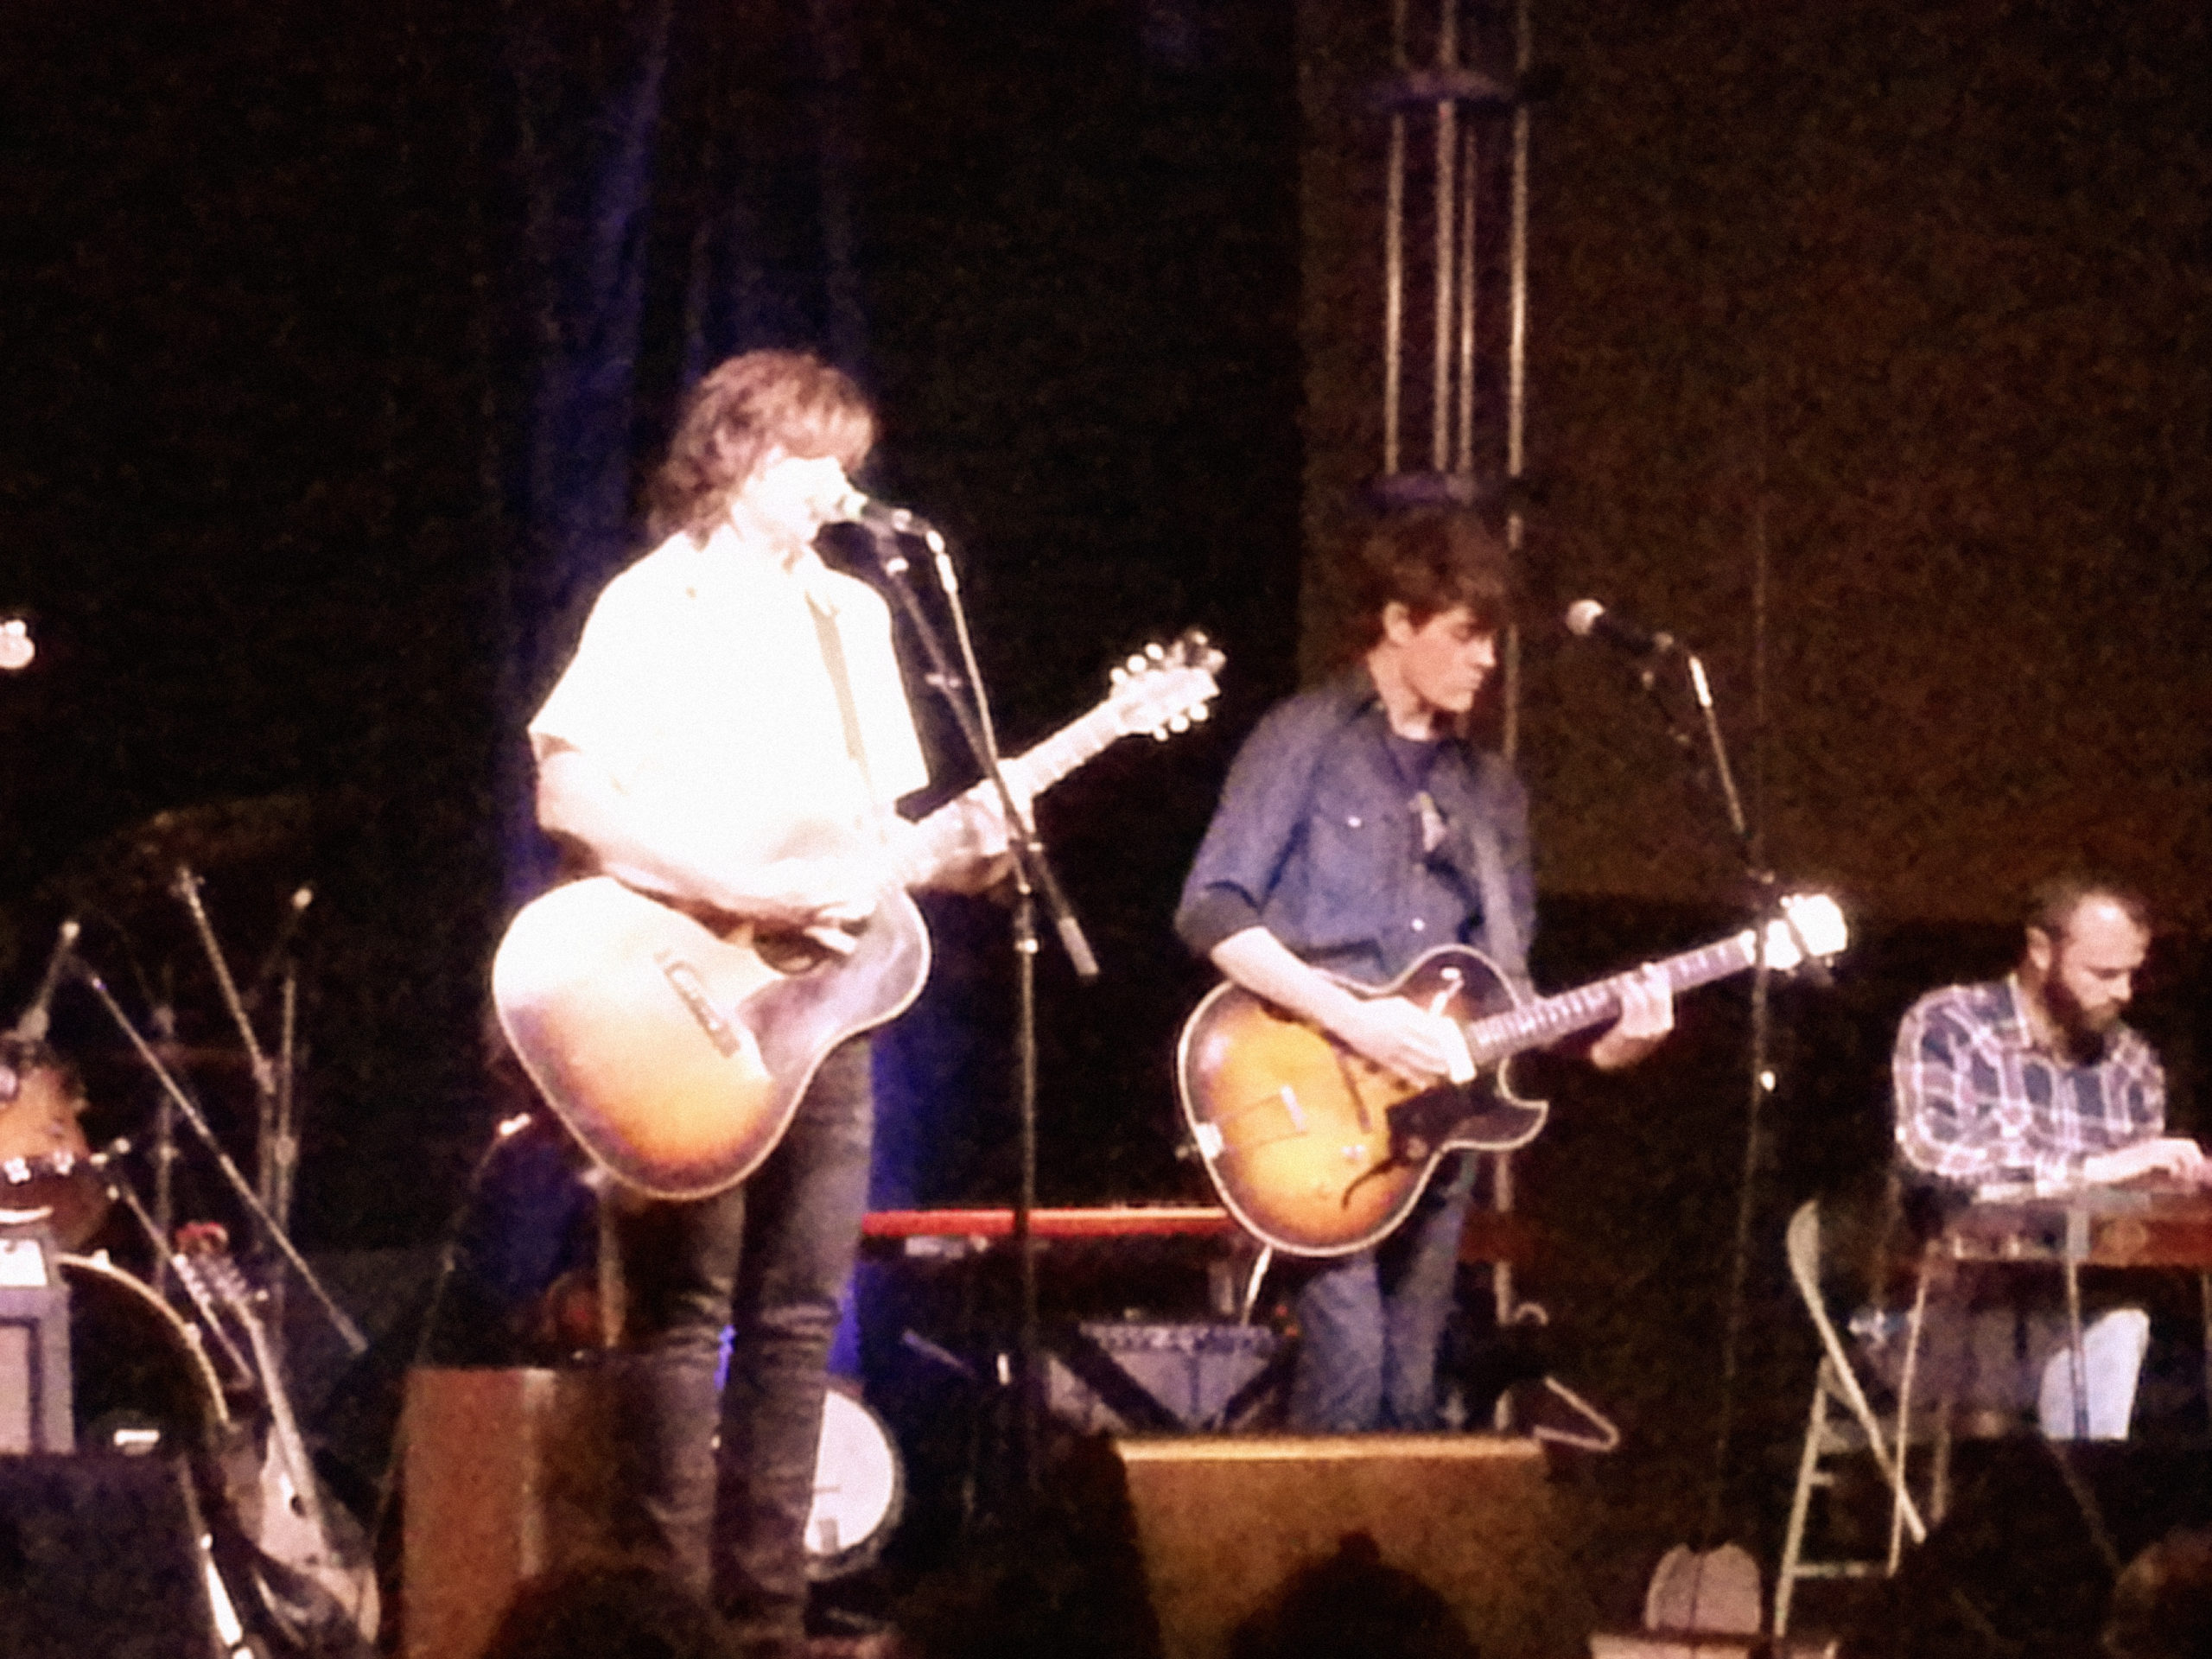 Amy Ray Earns Her Country Stripes in Nashville